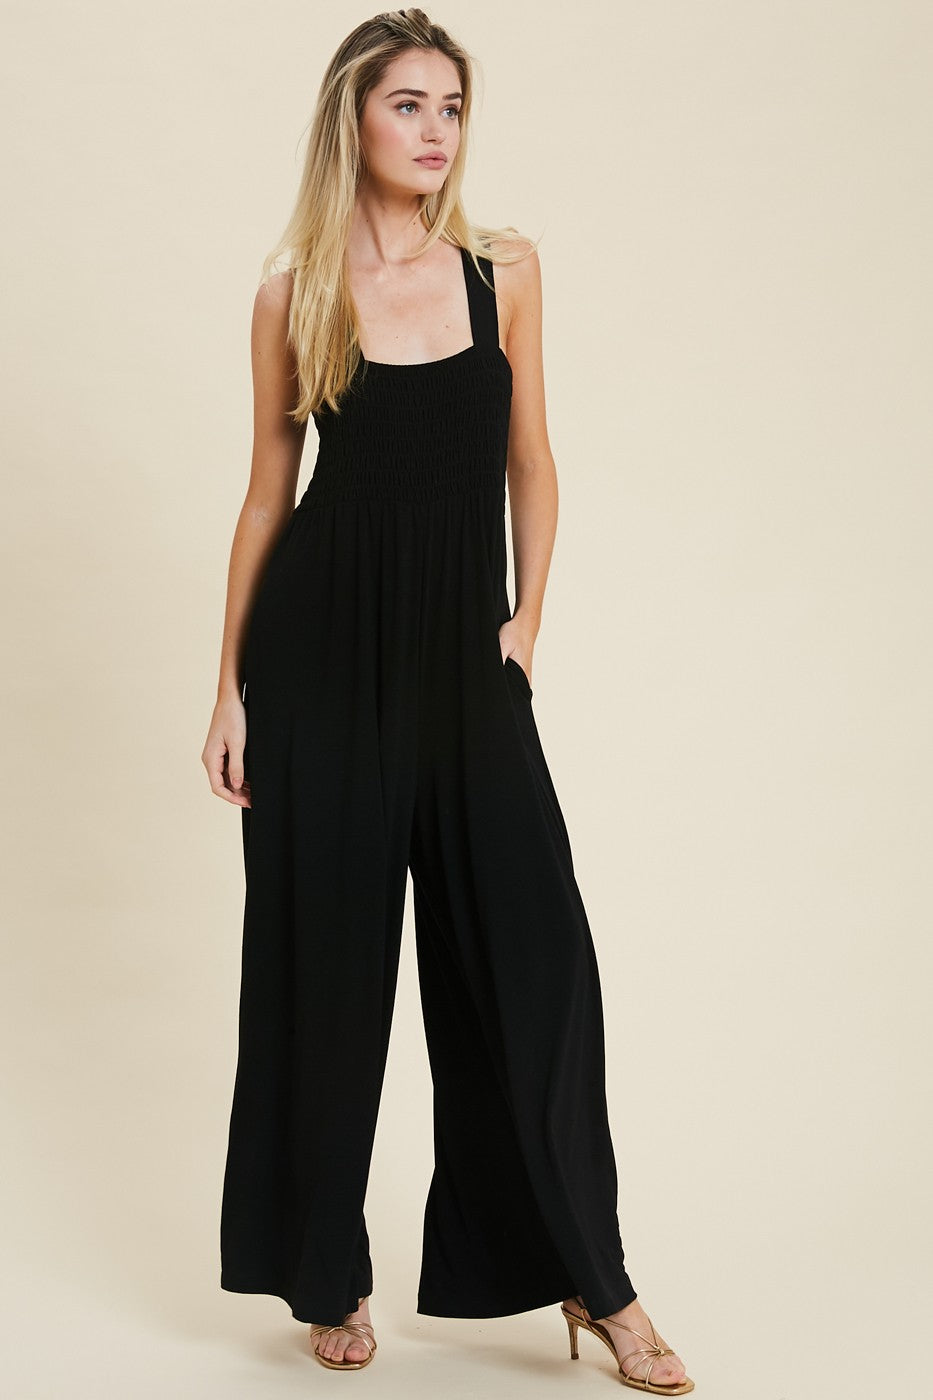 Wishlist Black Wide Leg Women's Jumpsuit